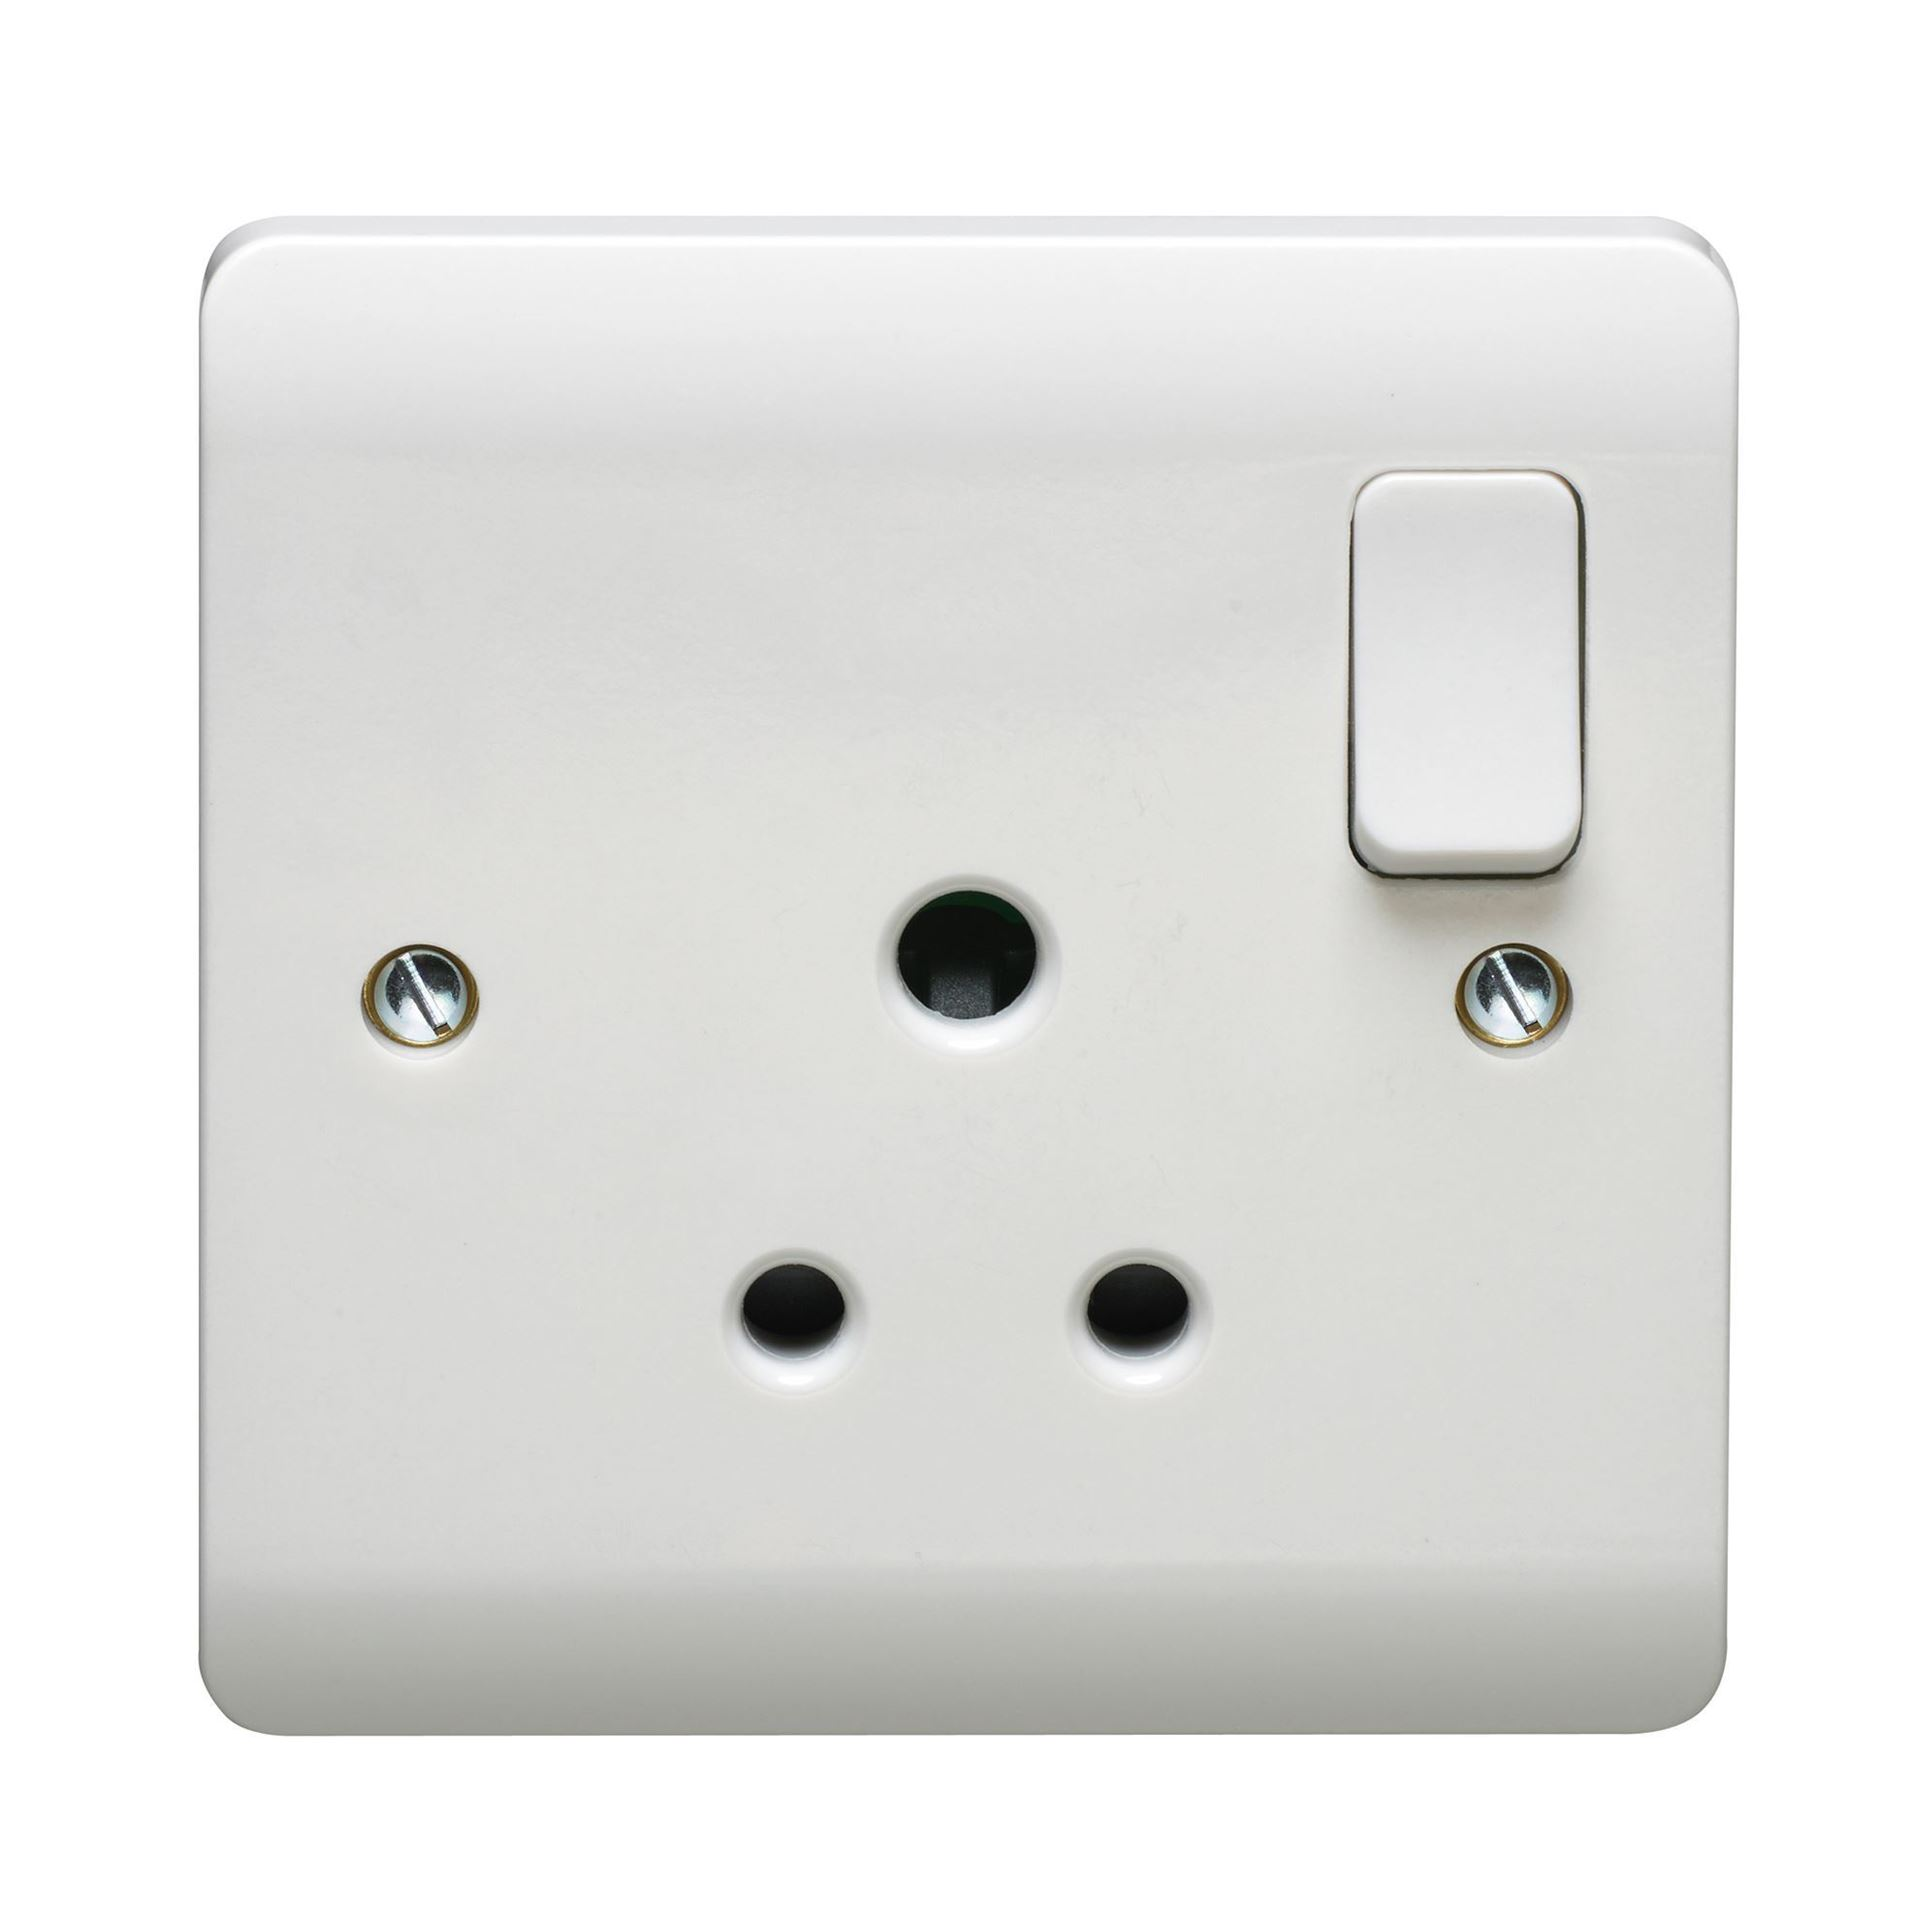 CRABTREE INSTINCT 1G 5A DP SWITCHED SOCKET CR1330